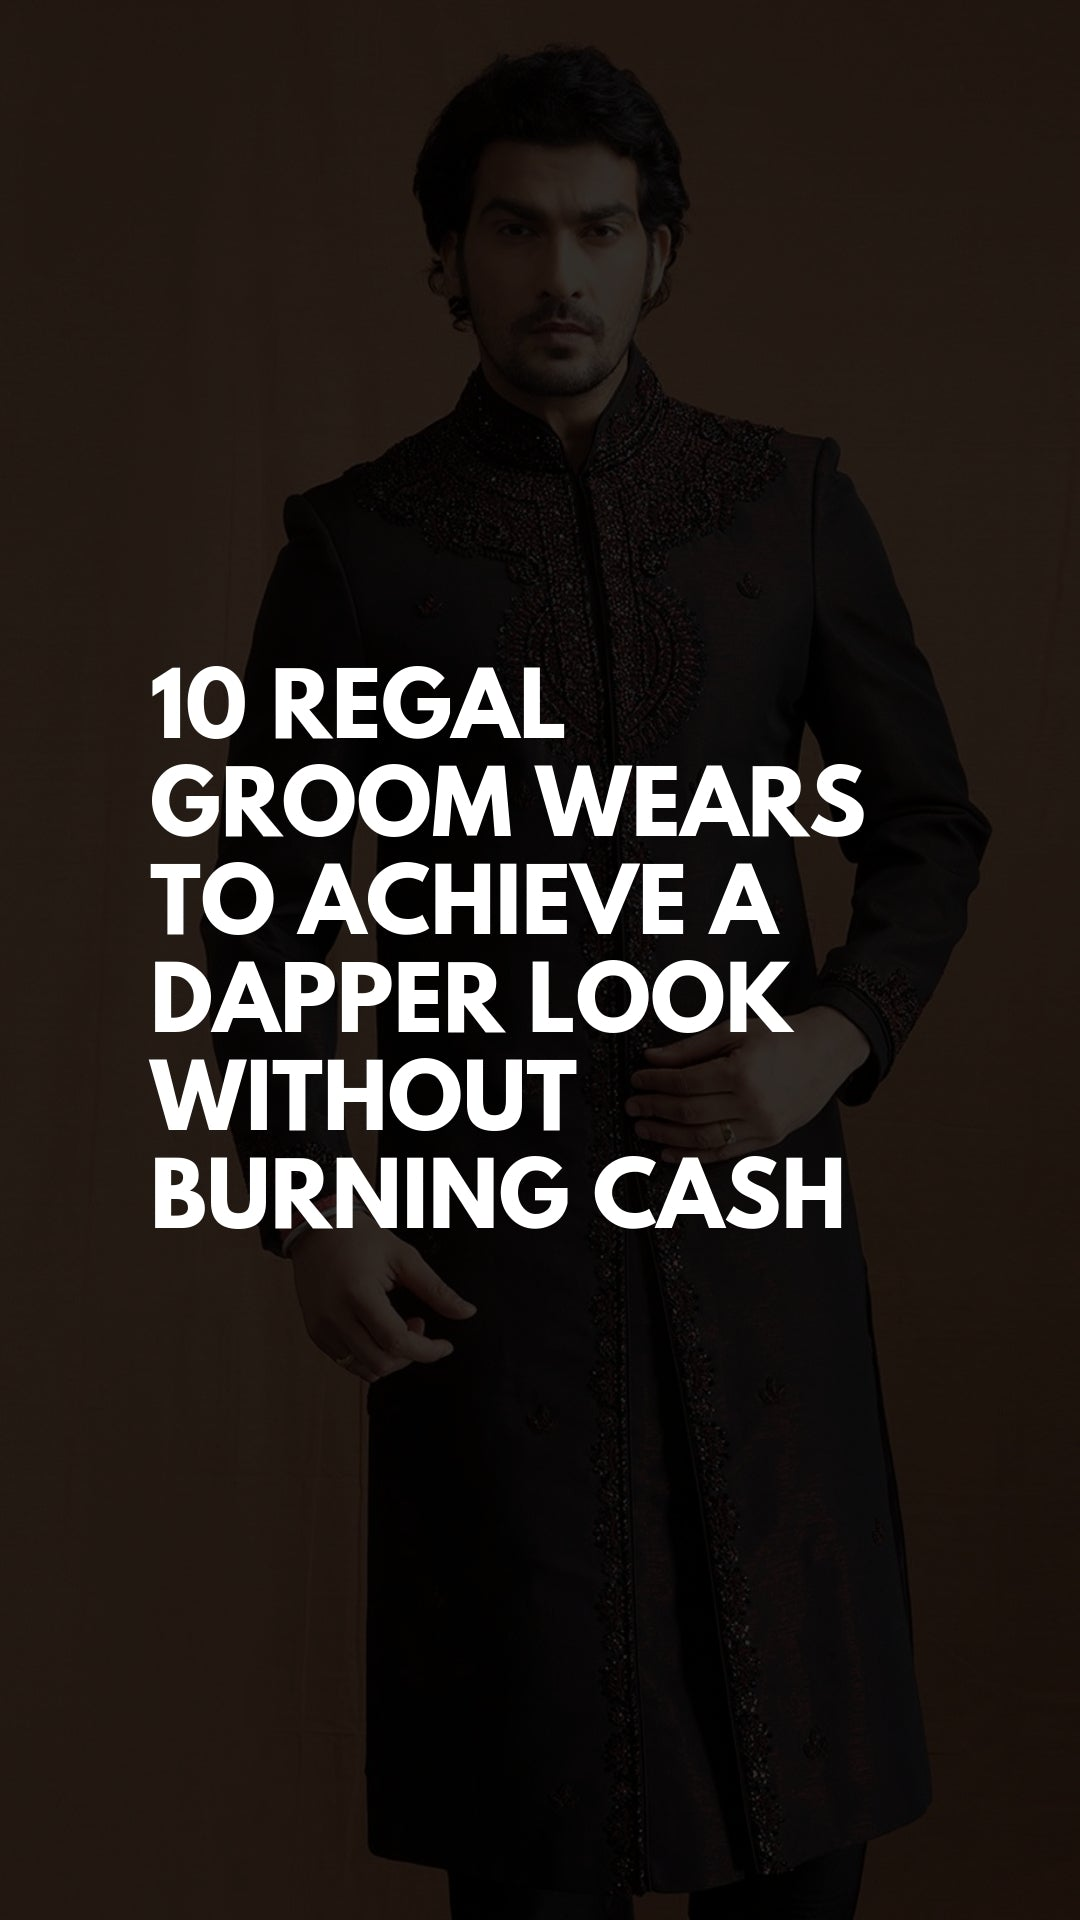 10 Regal Groom Wears to Achieve A Dapper Look Without Burning Cash